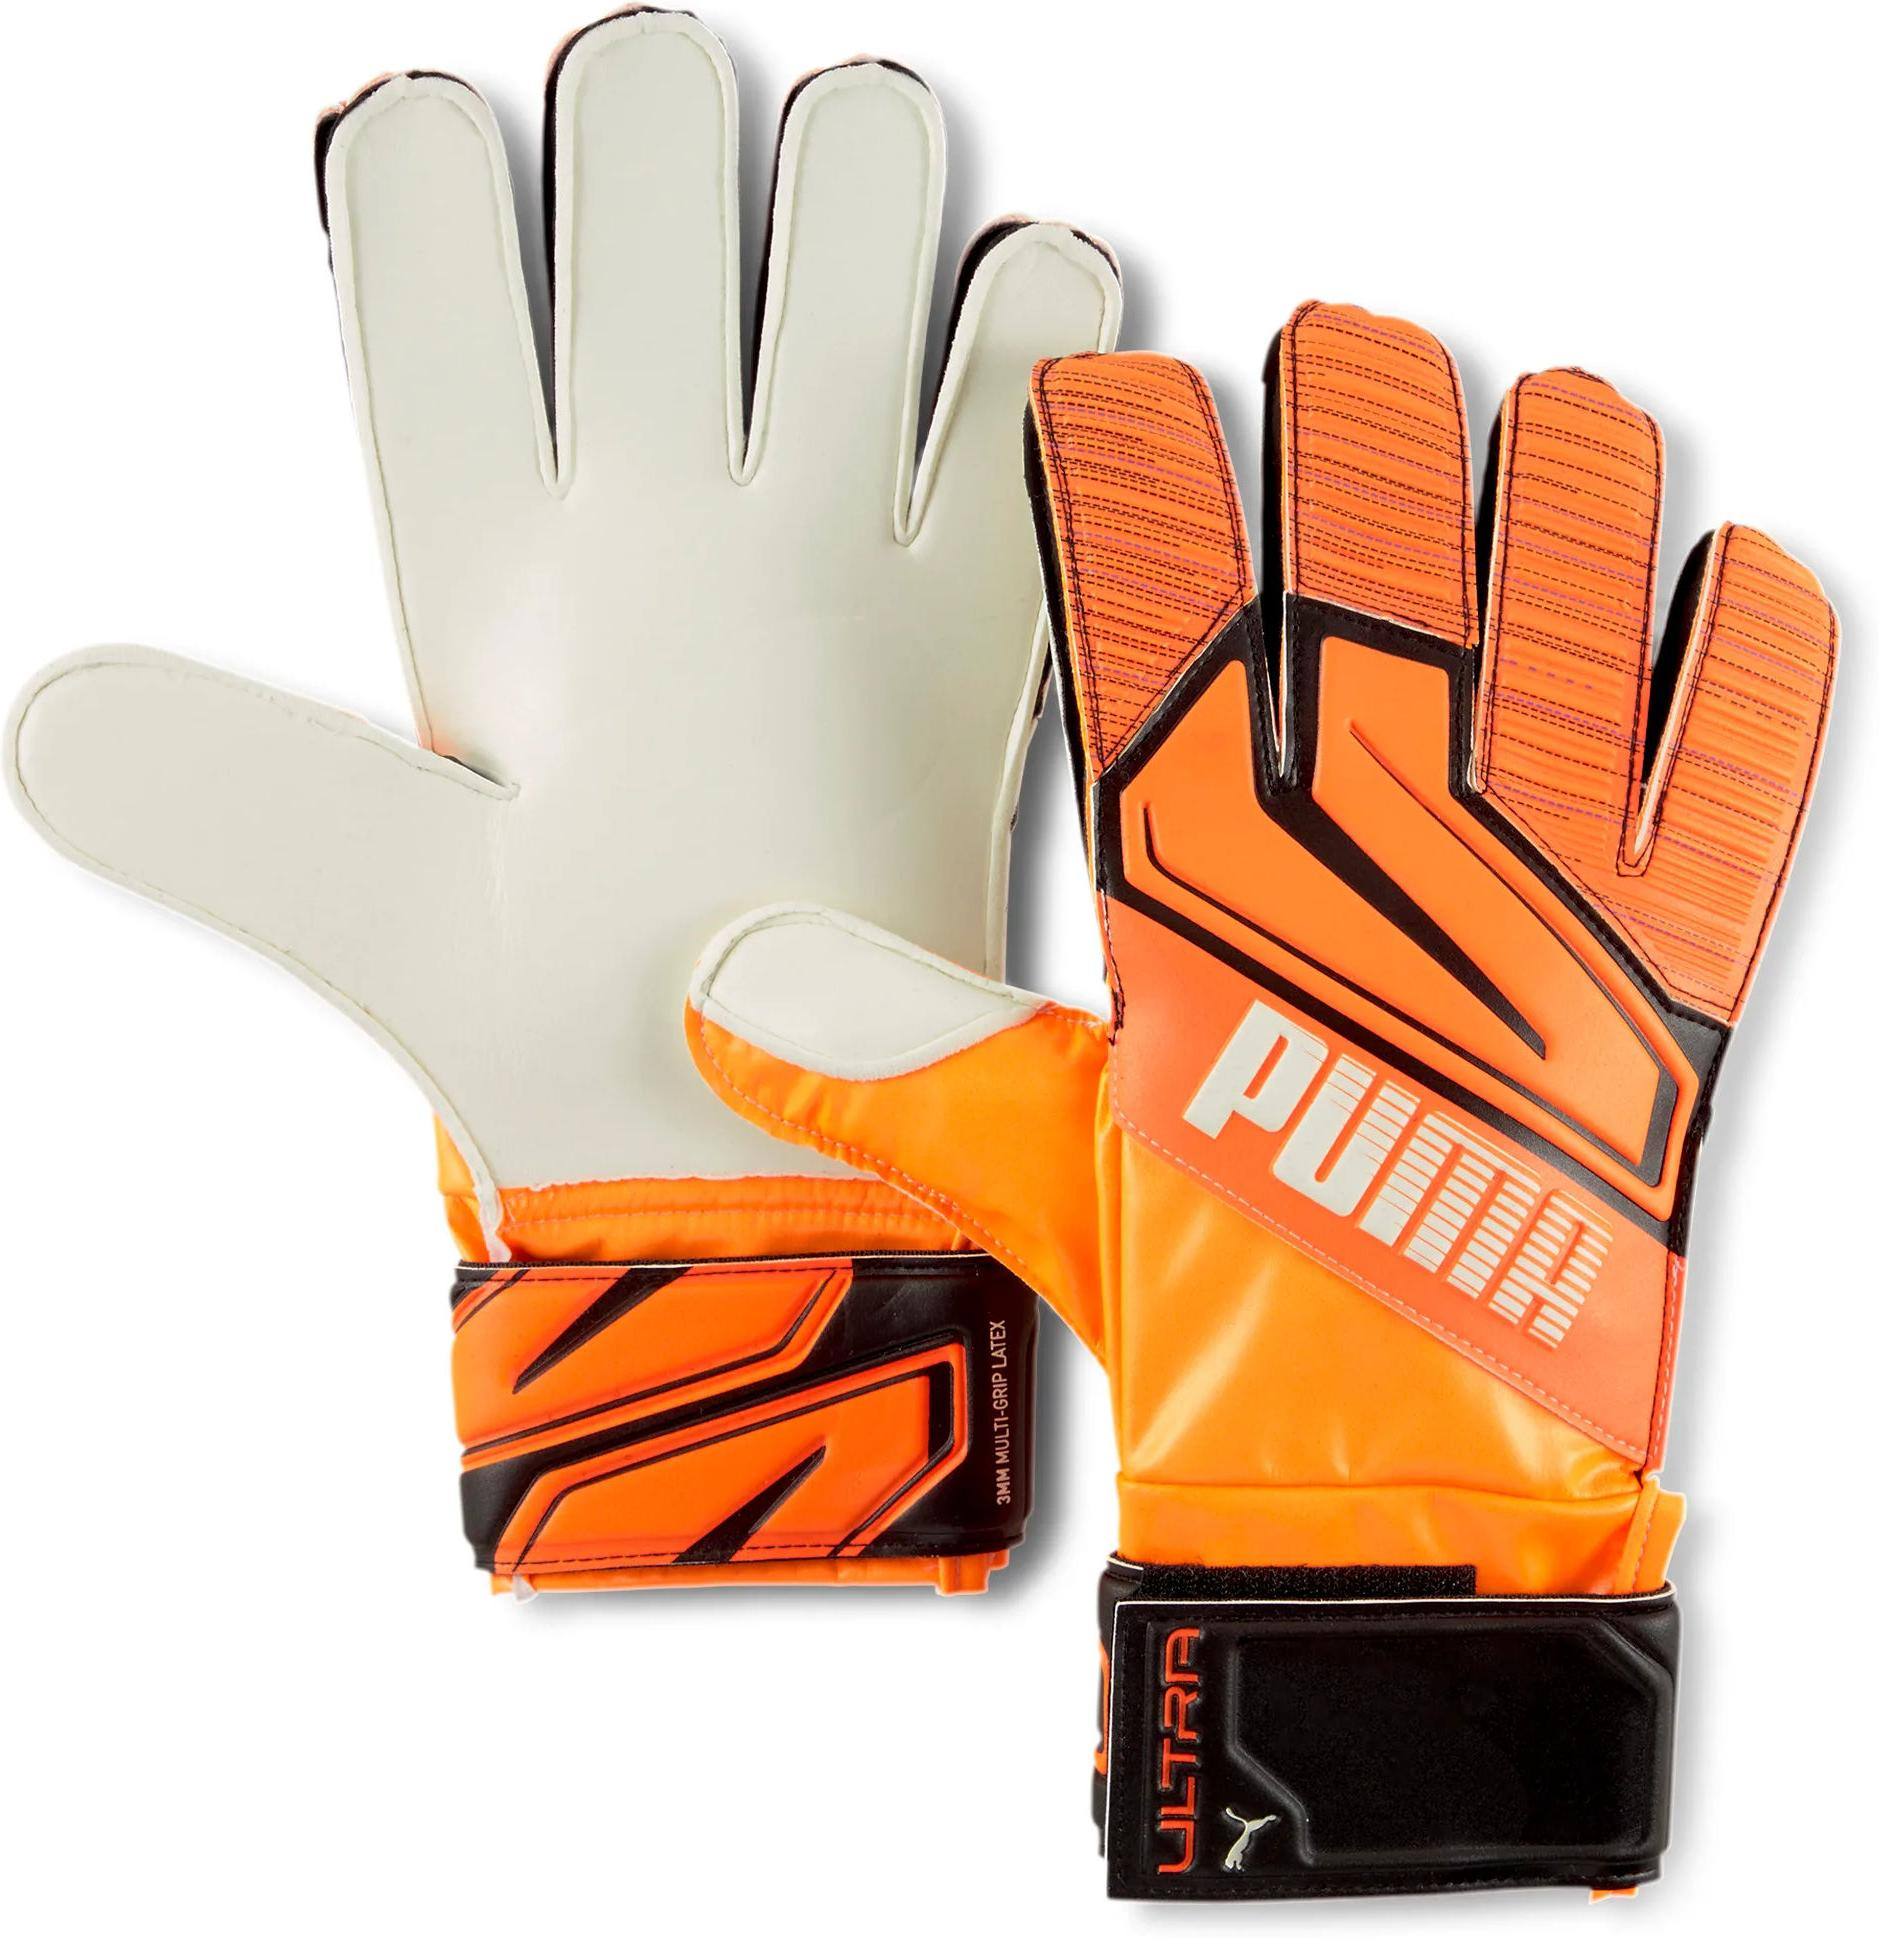 Gants de gardien Puma ULTRA Grip 3 RC